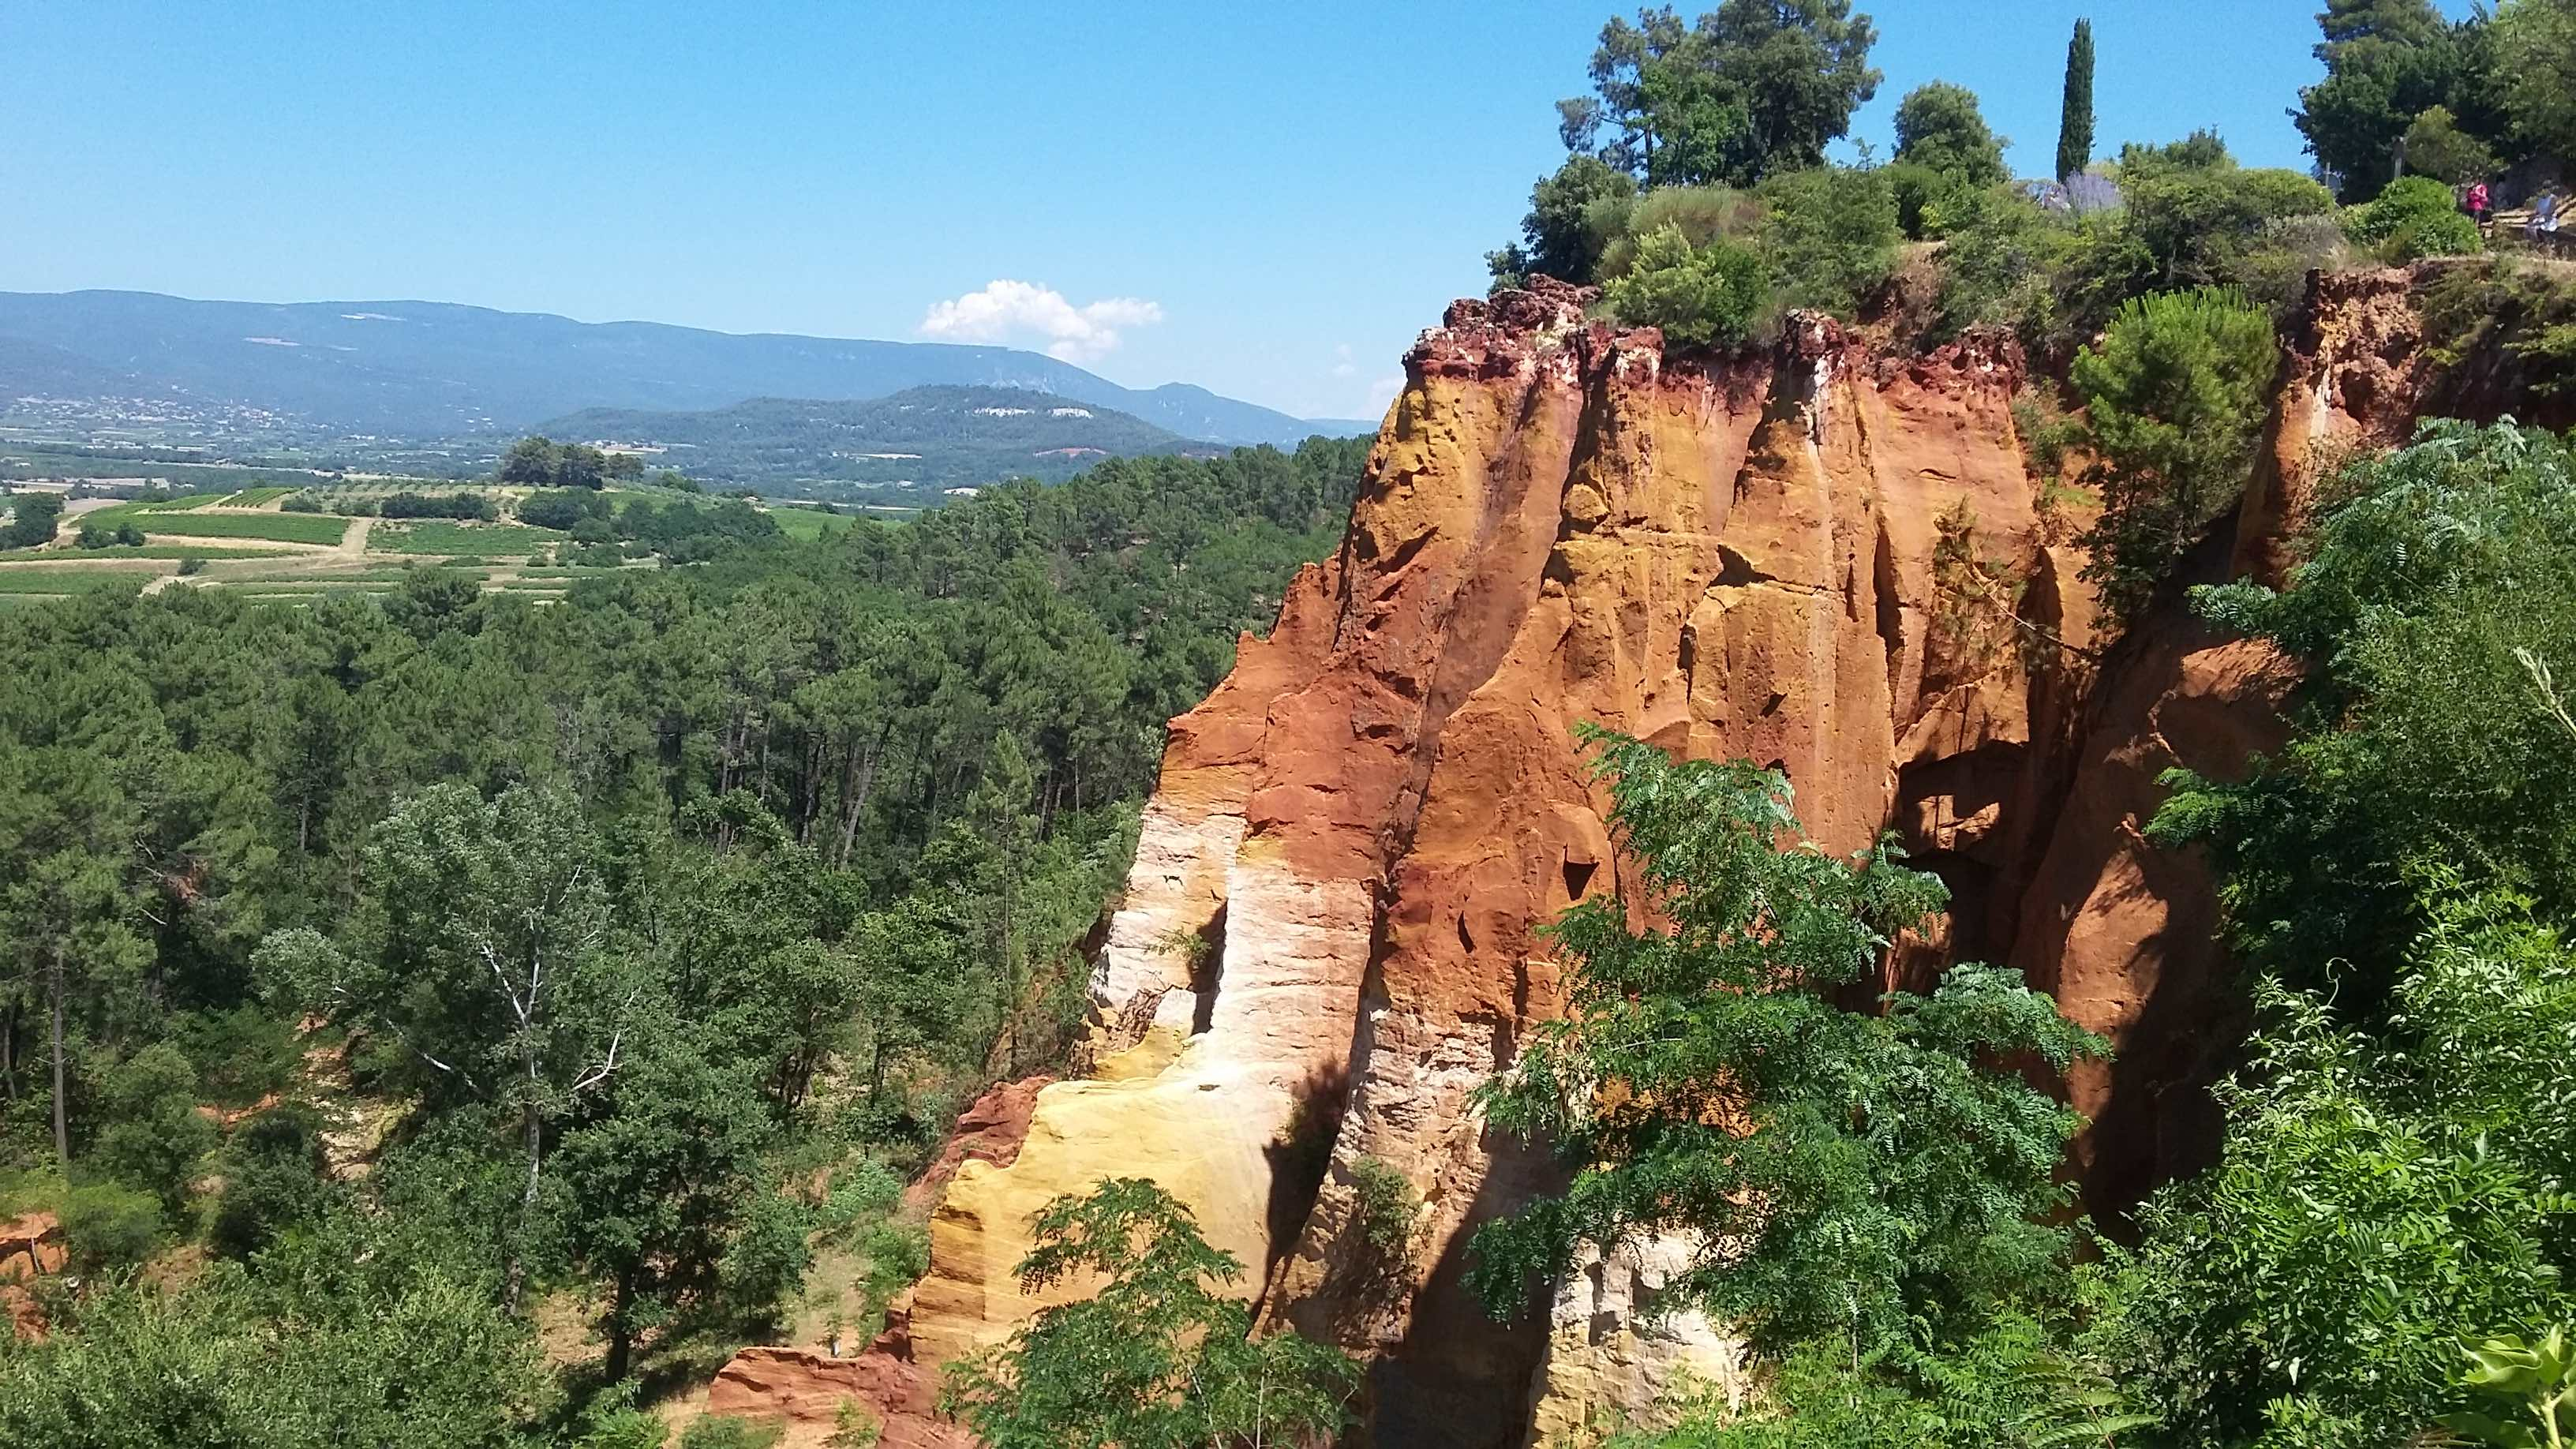 Ochre cliffs in Roussillon